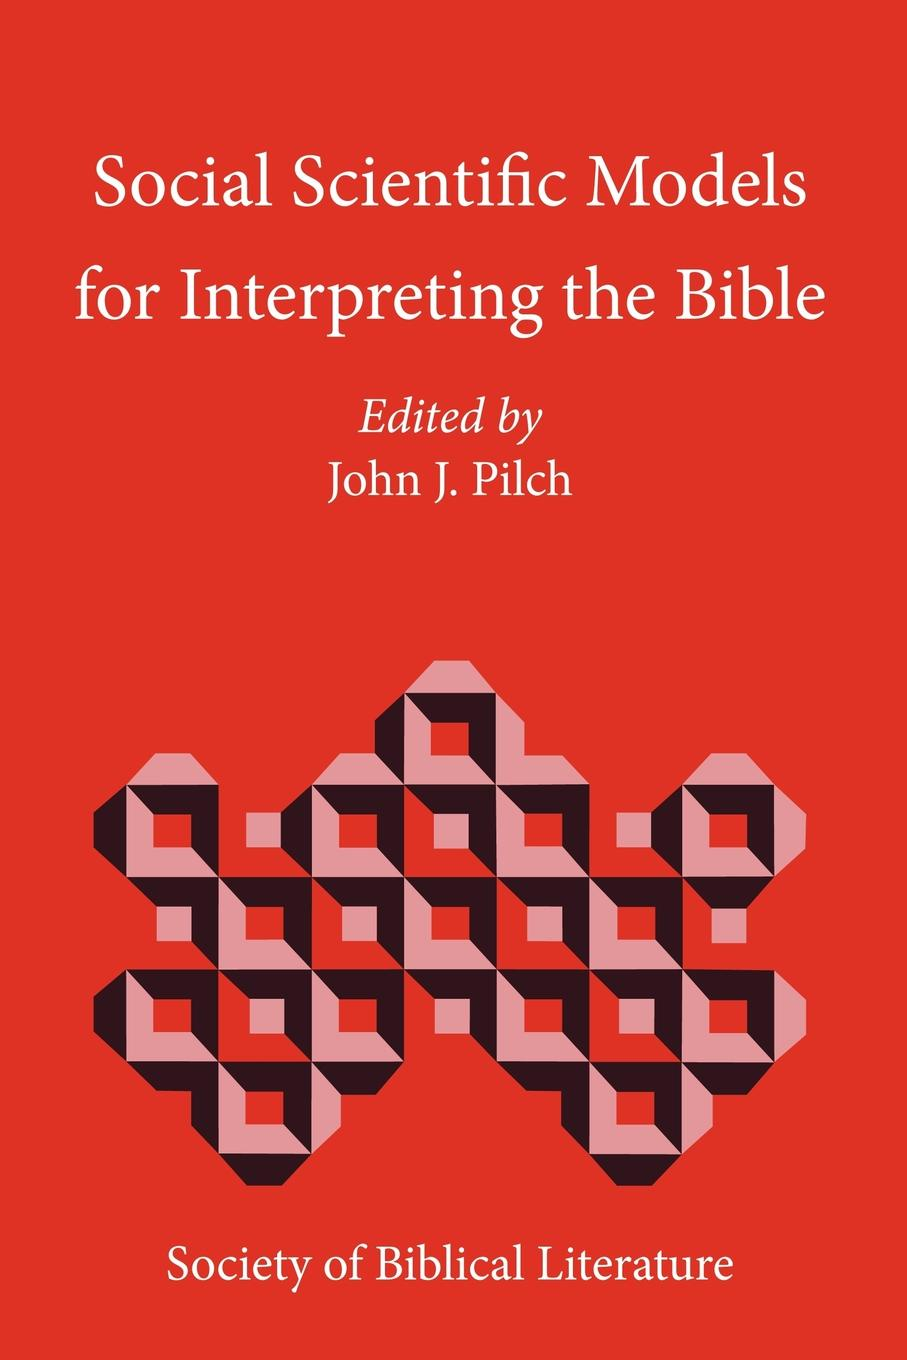 Social Scientific Models for Interpreting the Bible. Essays by the Context Group in Honor of Bruce J. Malina bruce j malina richard l rohrbaugh social science commentary on the gospel of john